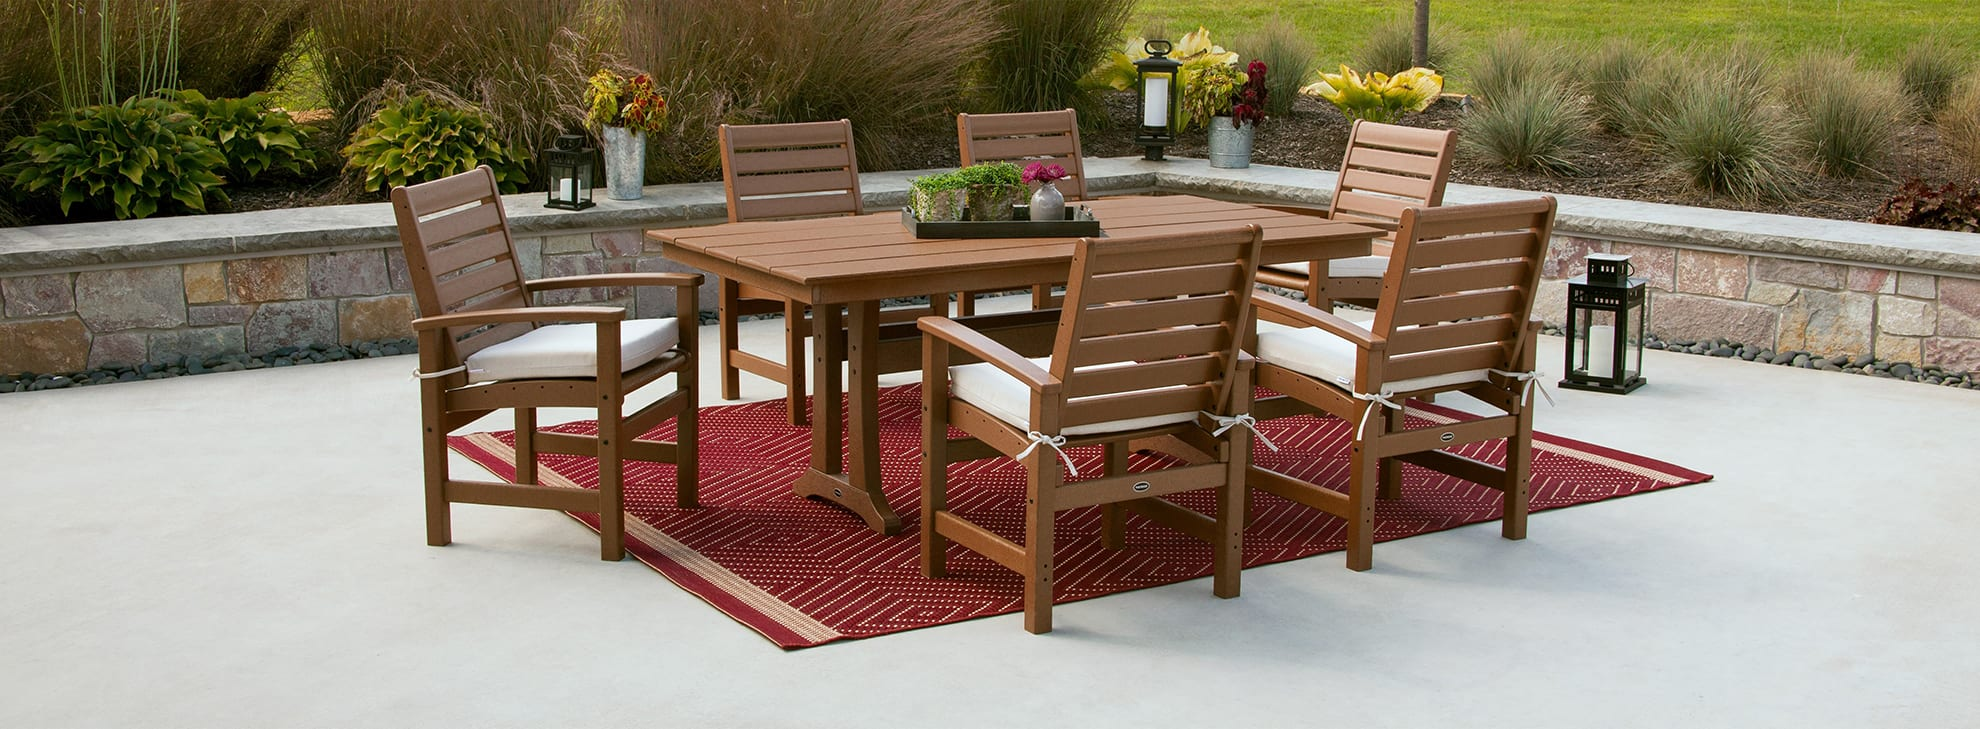 Outdoor Dining Furniture Polywood